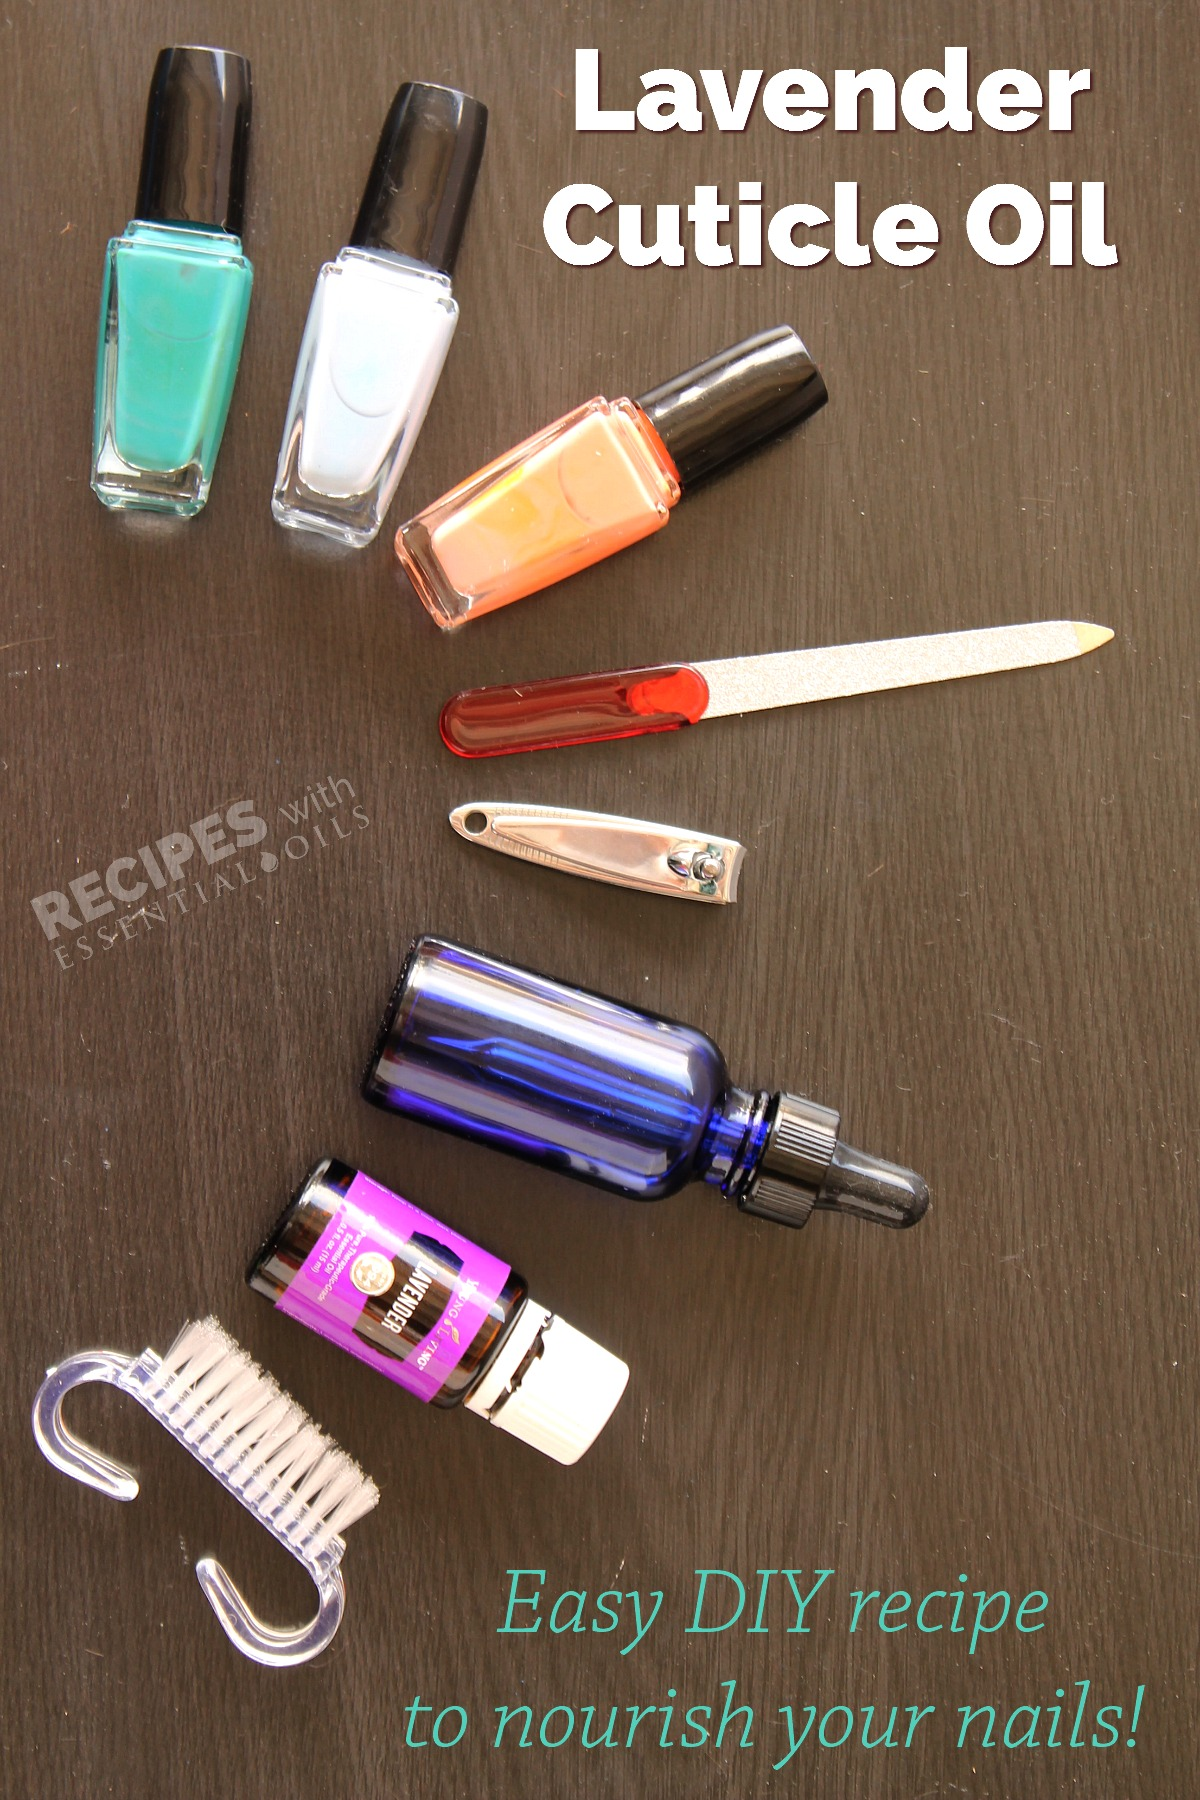 Lavender Cuticle Oil Recipe from RecipeswithEssentialOils.com